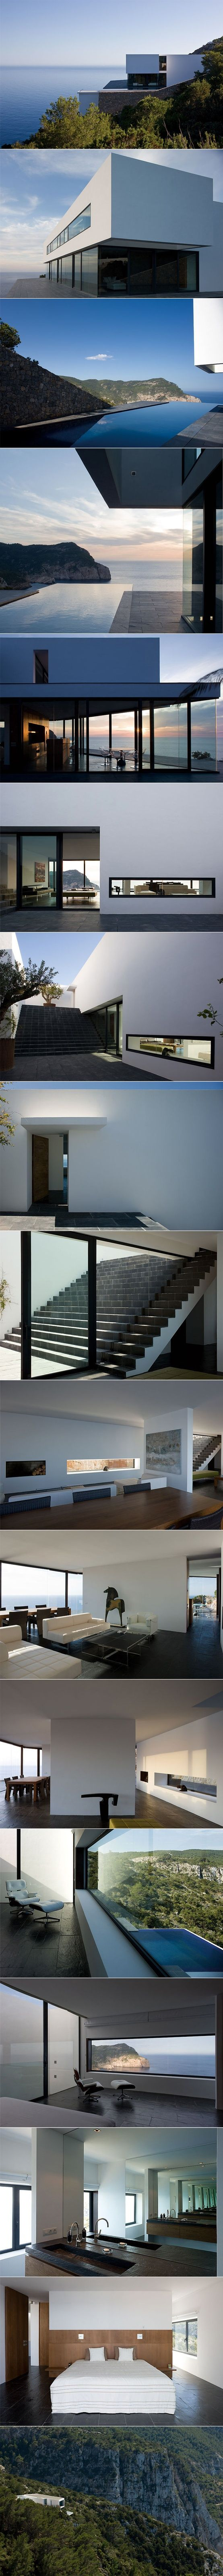 Maison AIBS by Bruno Erpicum and Partners. Spain...almost the same as nettleton